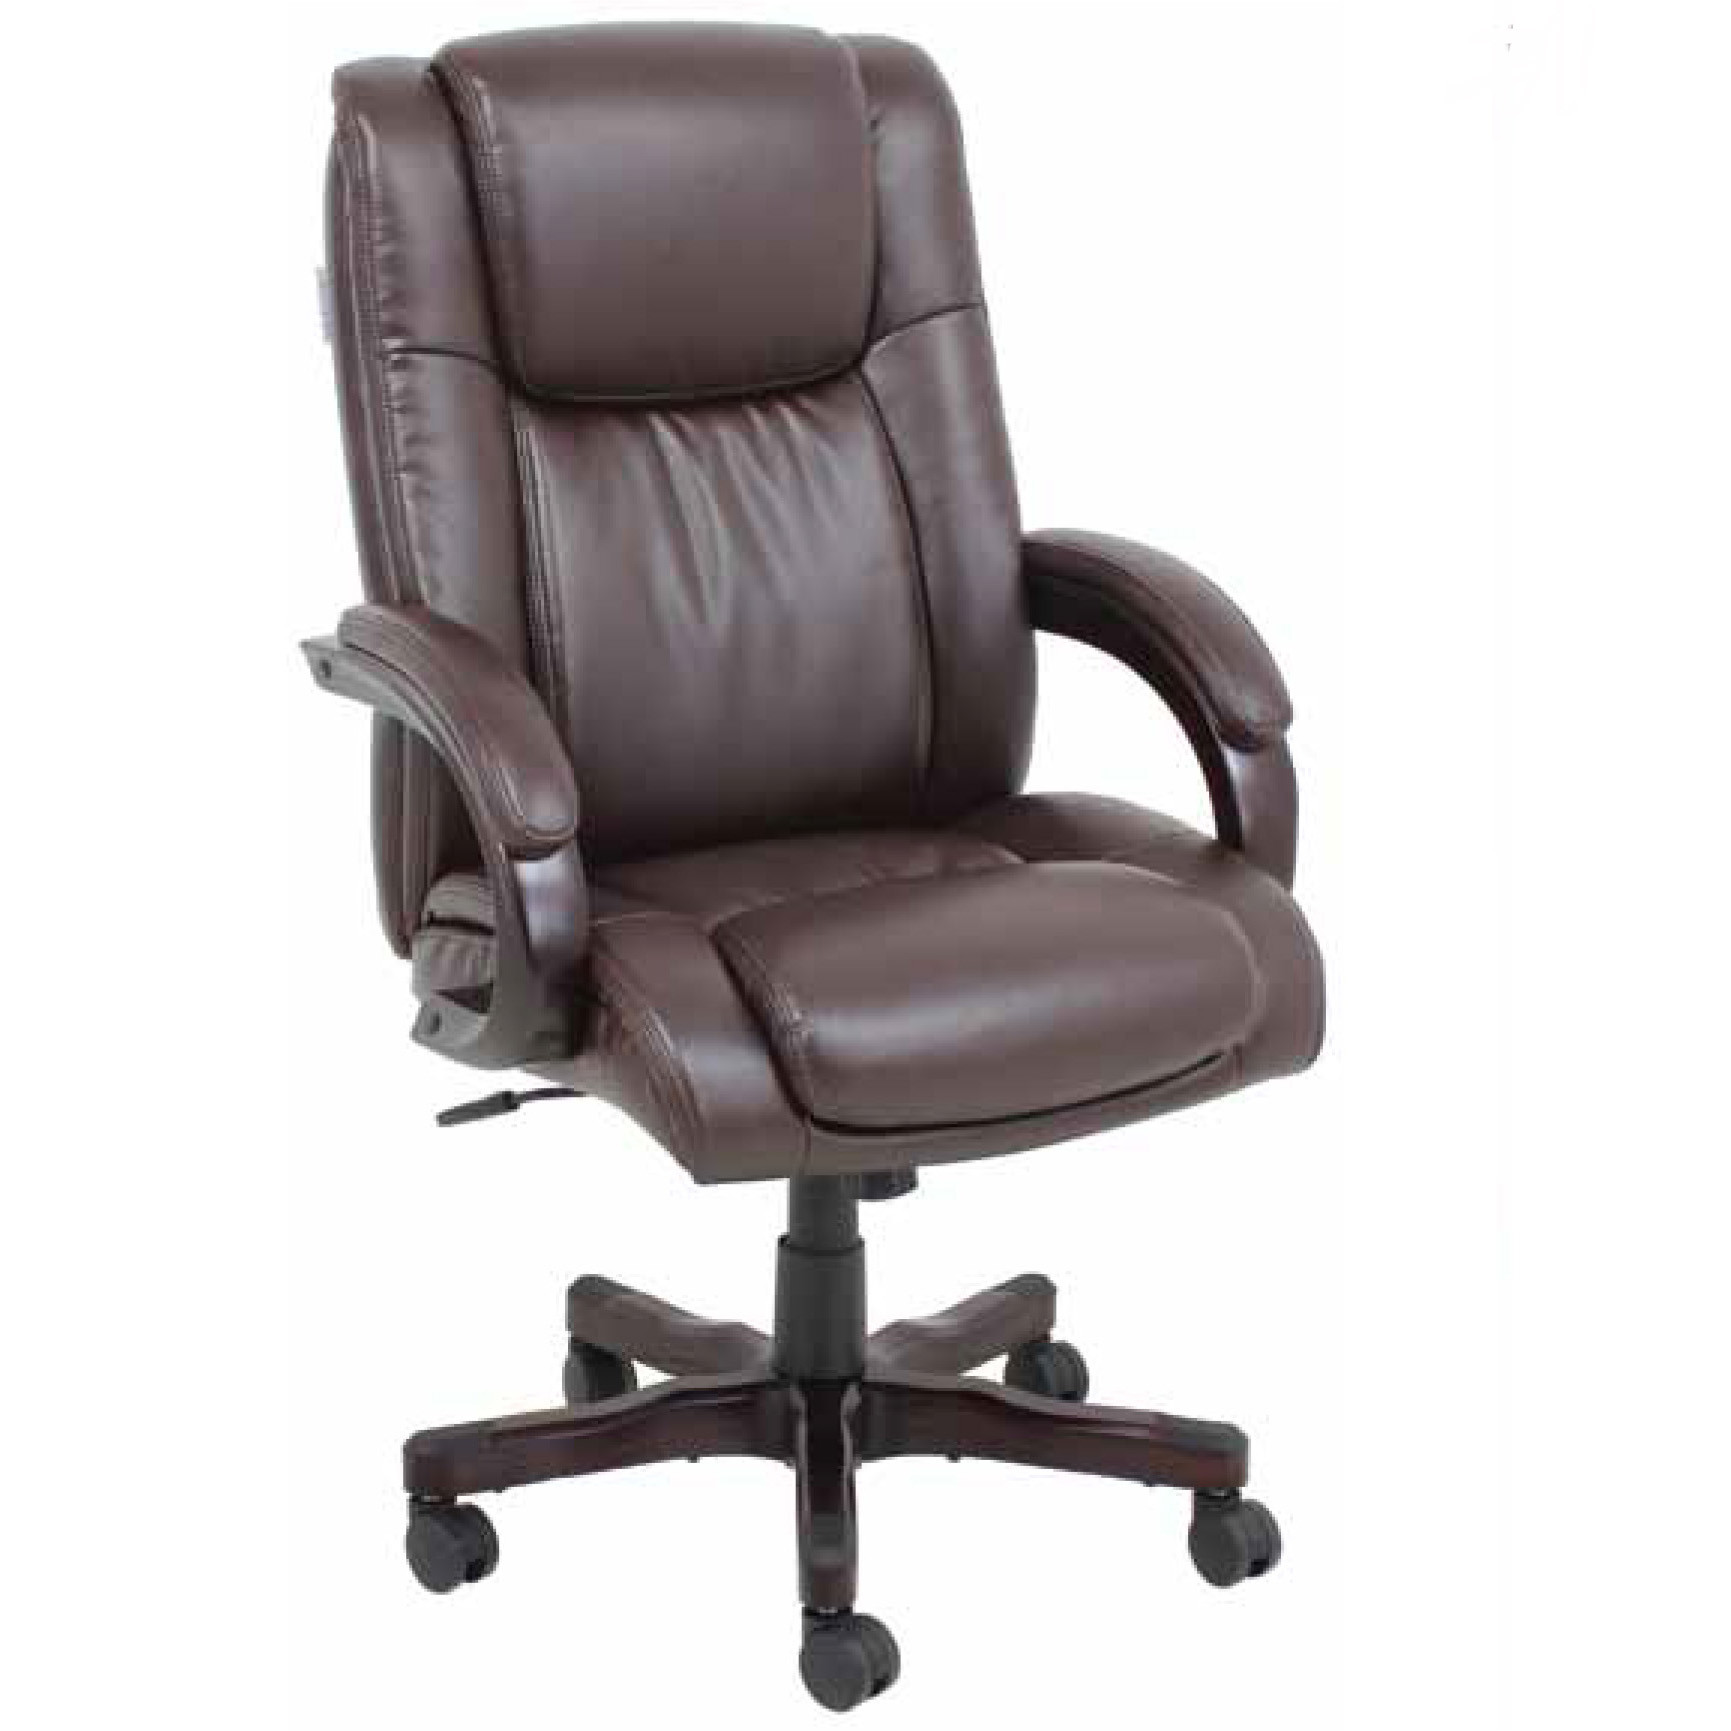 Best ideas about Office Chair Recliner . Save or Pin Barcalounger Titan II Home fice Desk Chair Recliner Now.